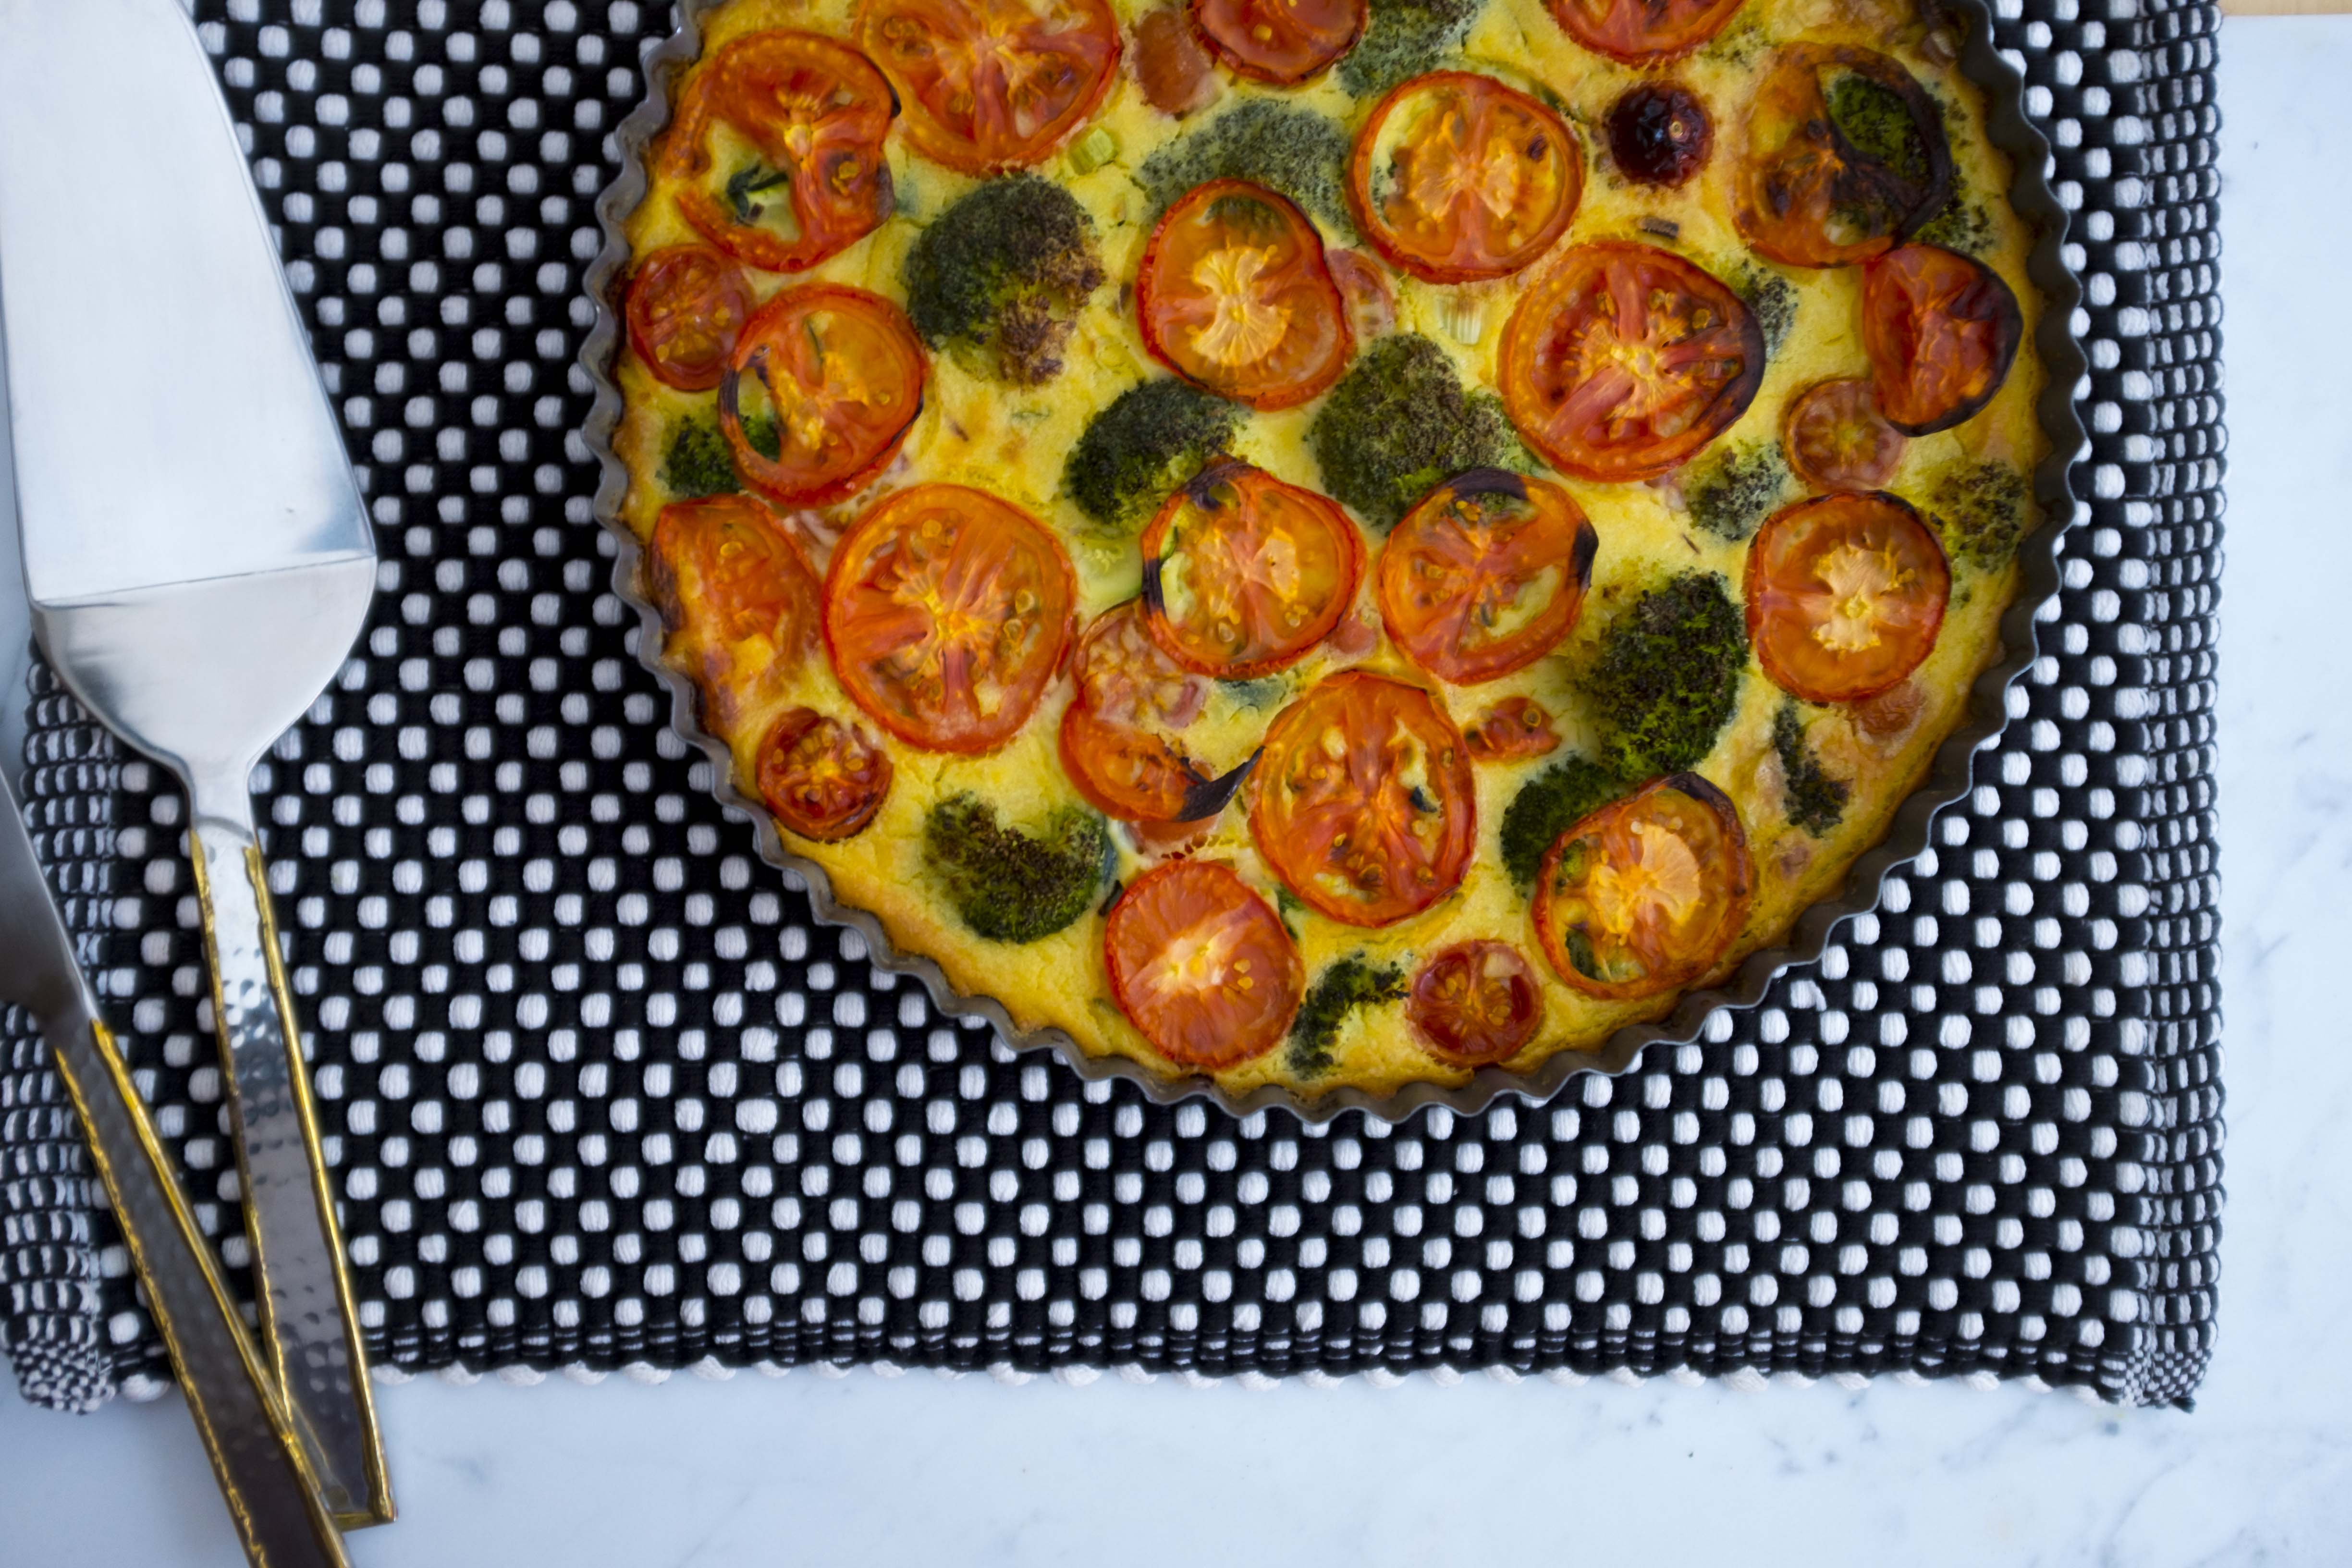 Quiche cooked r